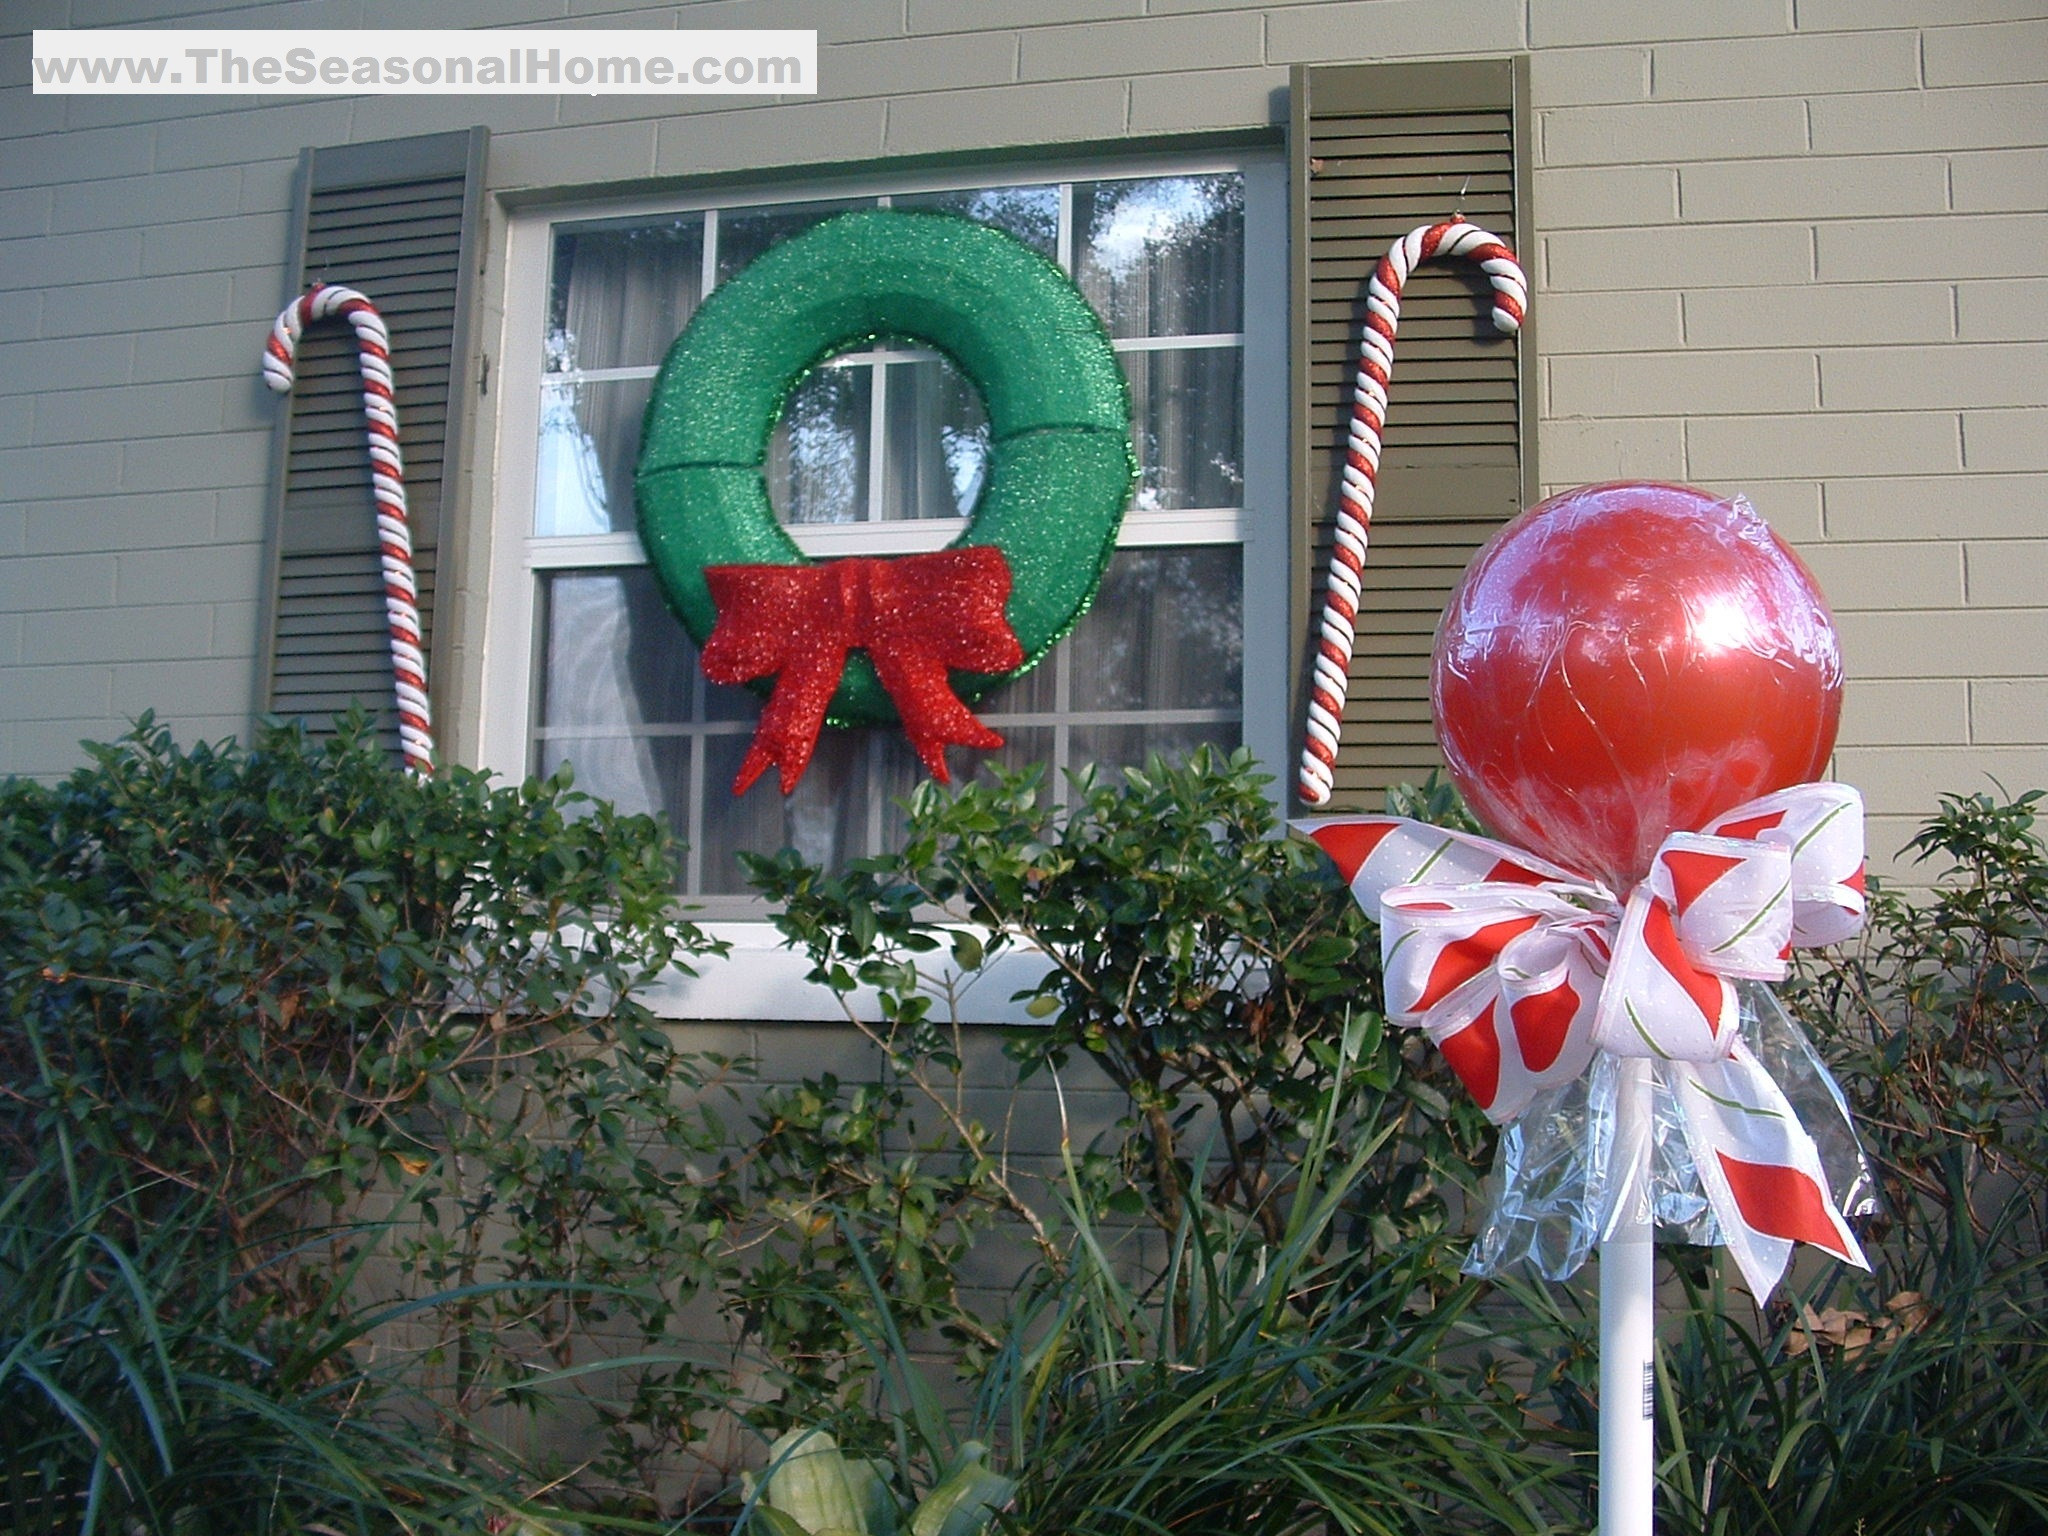 """Diy Christmas Candy Decorations  Outdoor """"CANDY"""" A Christmas Decorating Idea The"""